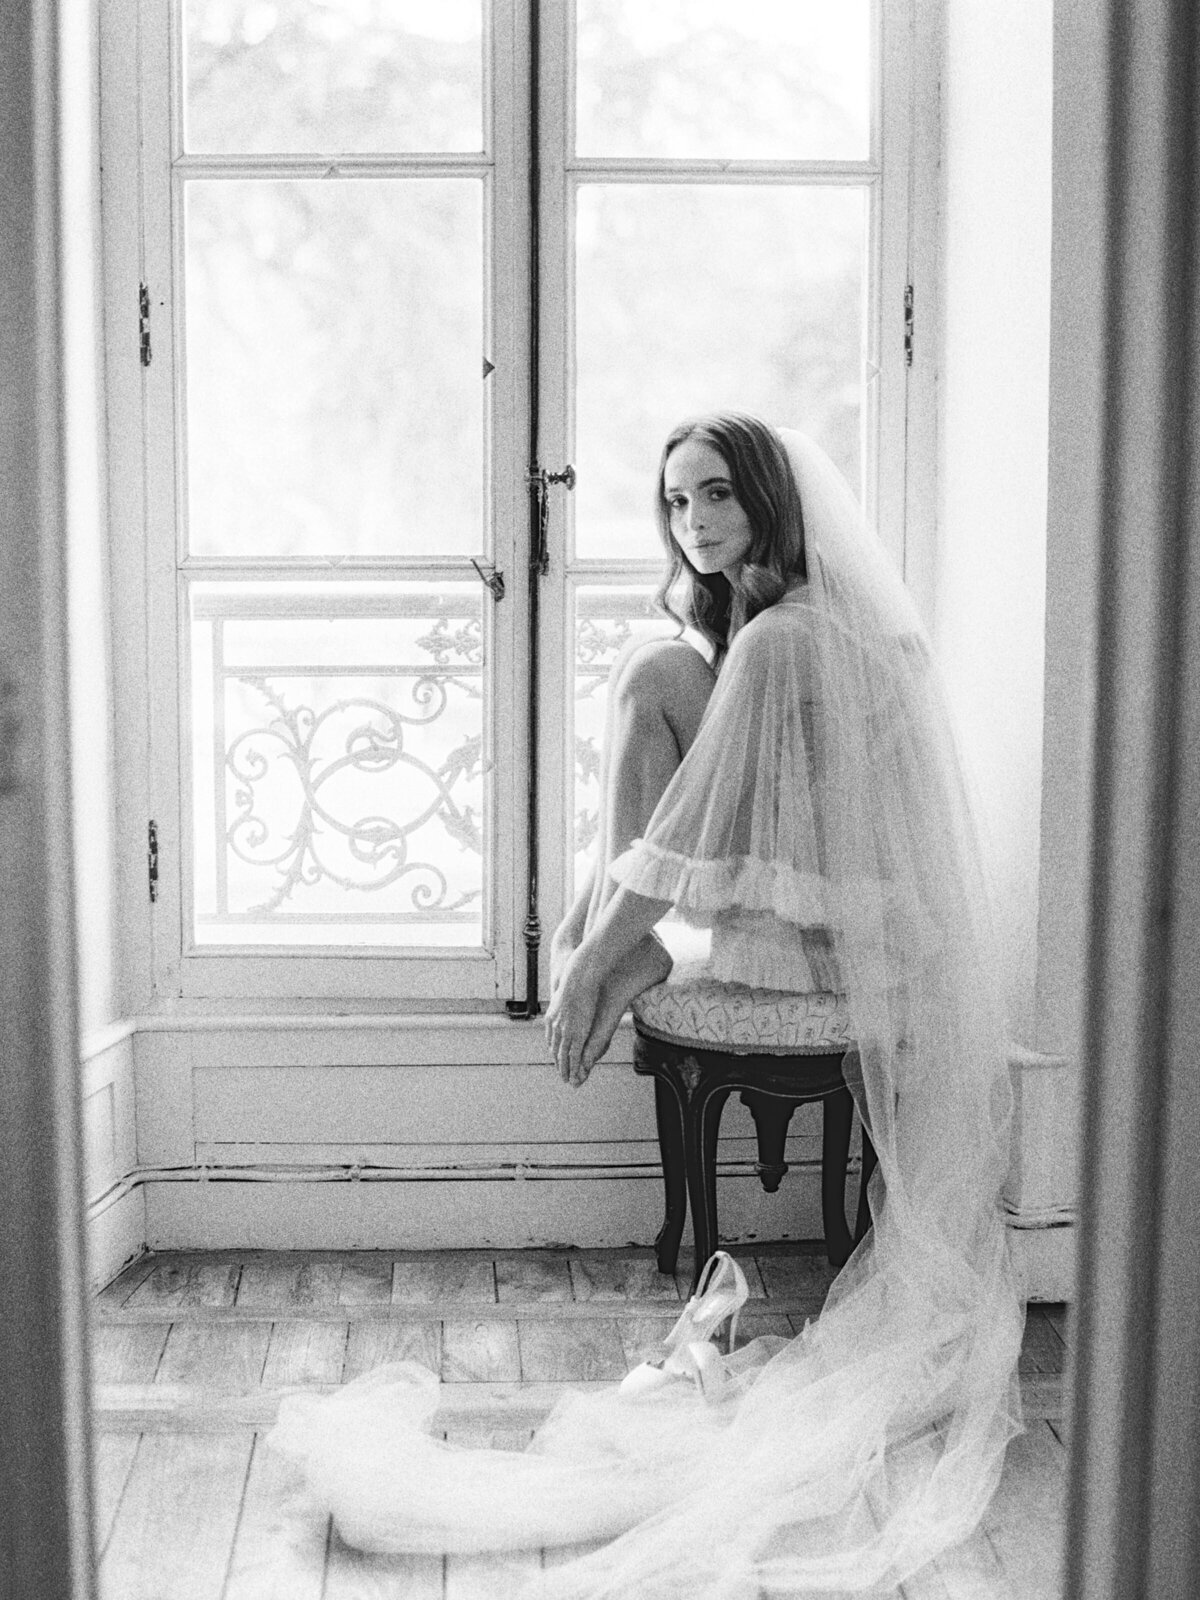 chateau-bouthonvilliers-wedding-paris-wedding-photographer-mackenzie-reiter-photography-9